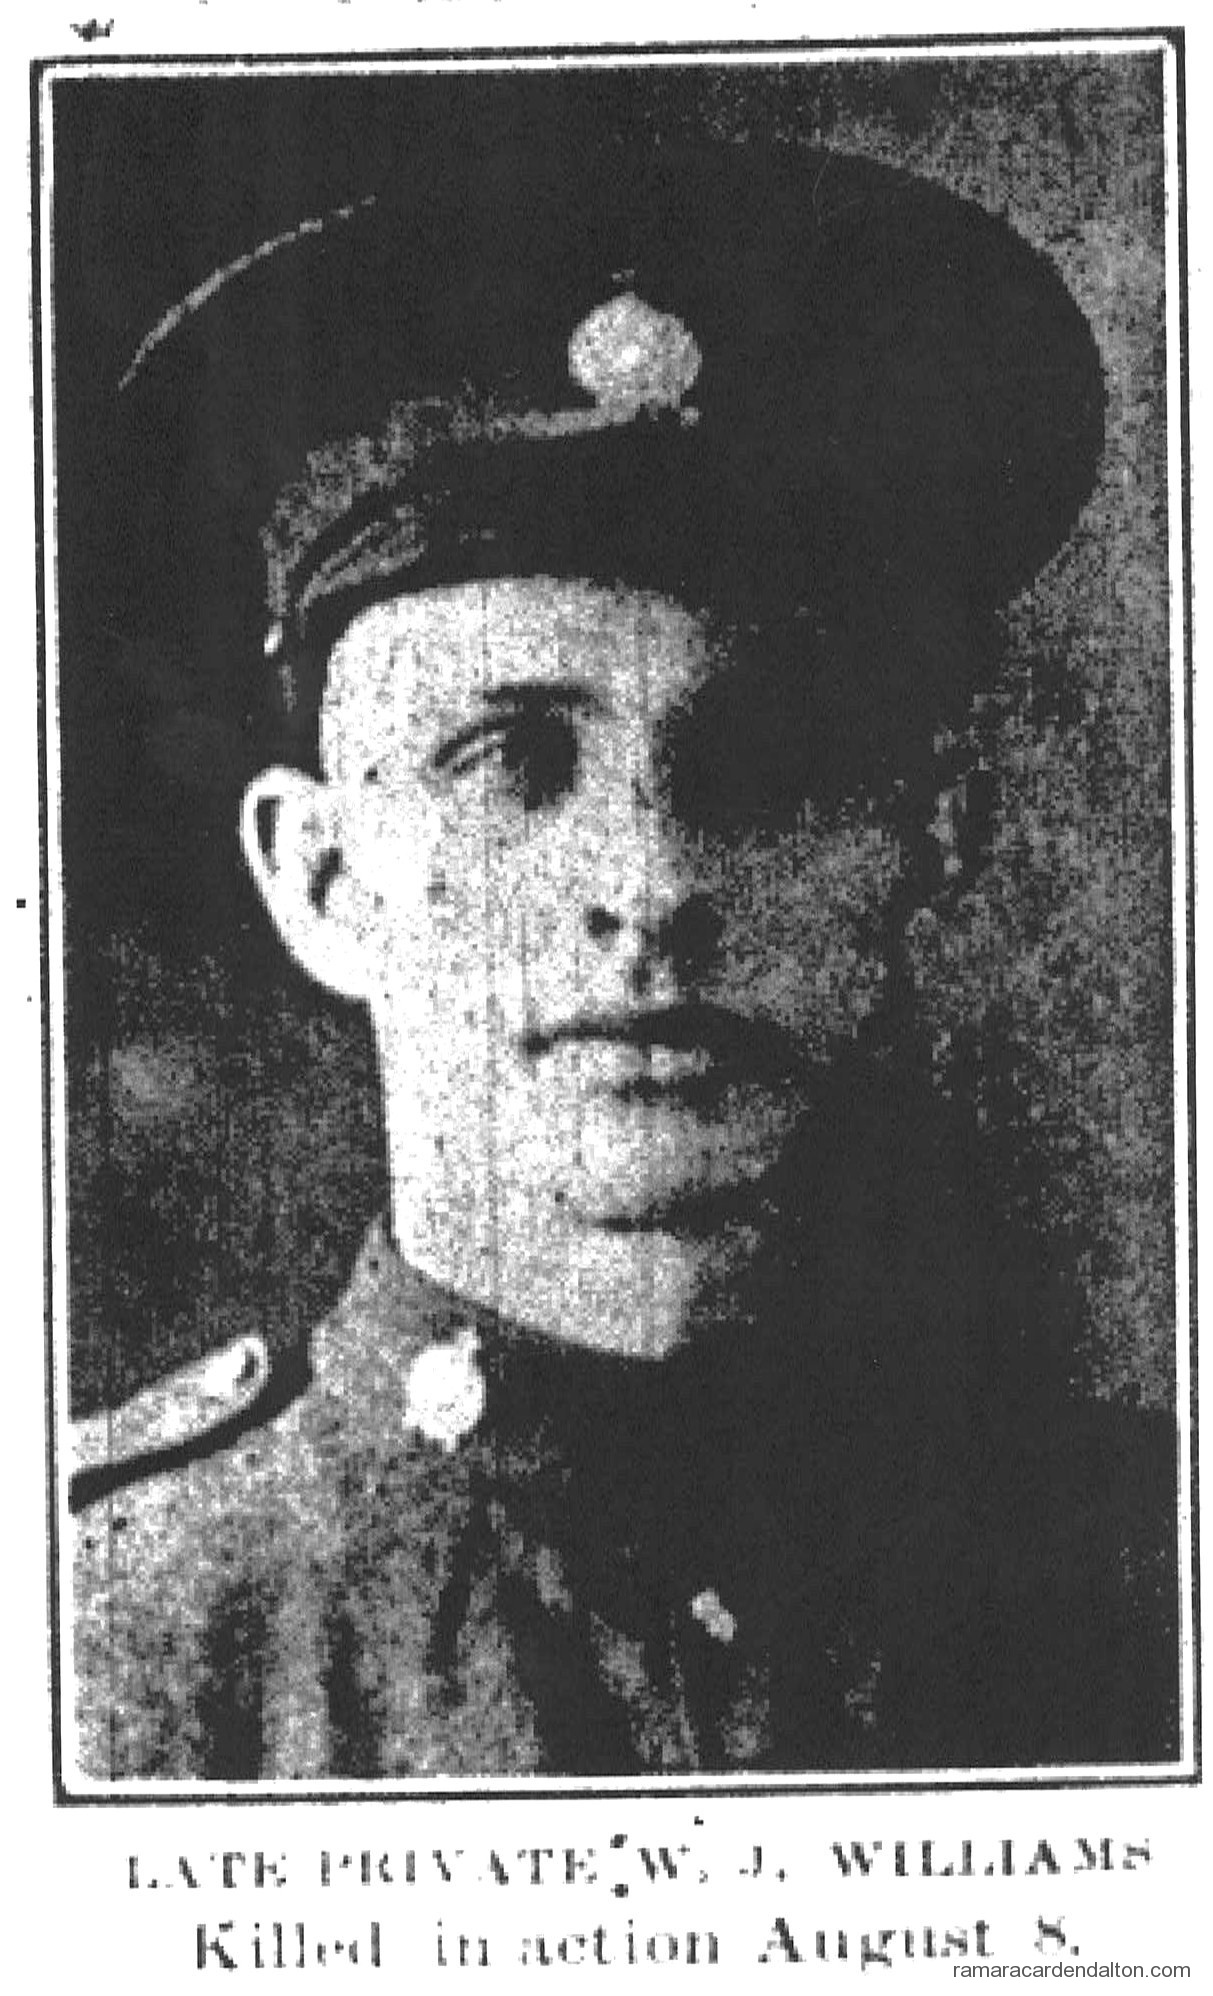 Pte. W. J. WILLIAMS